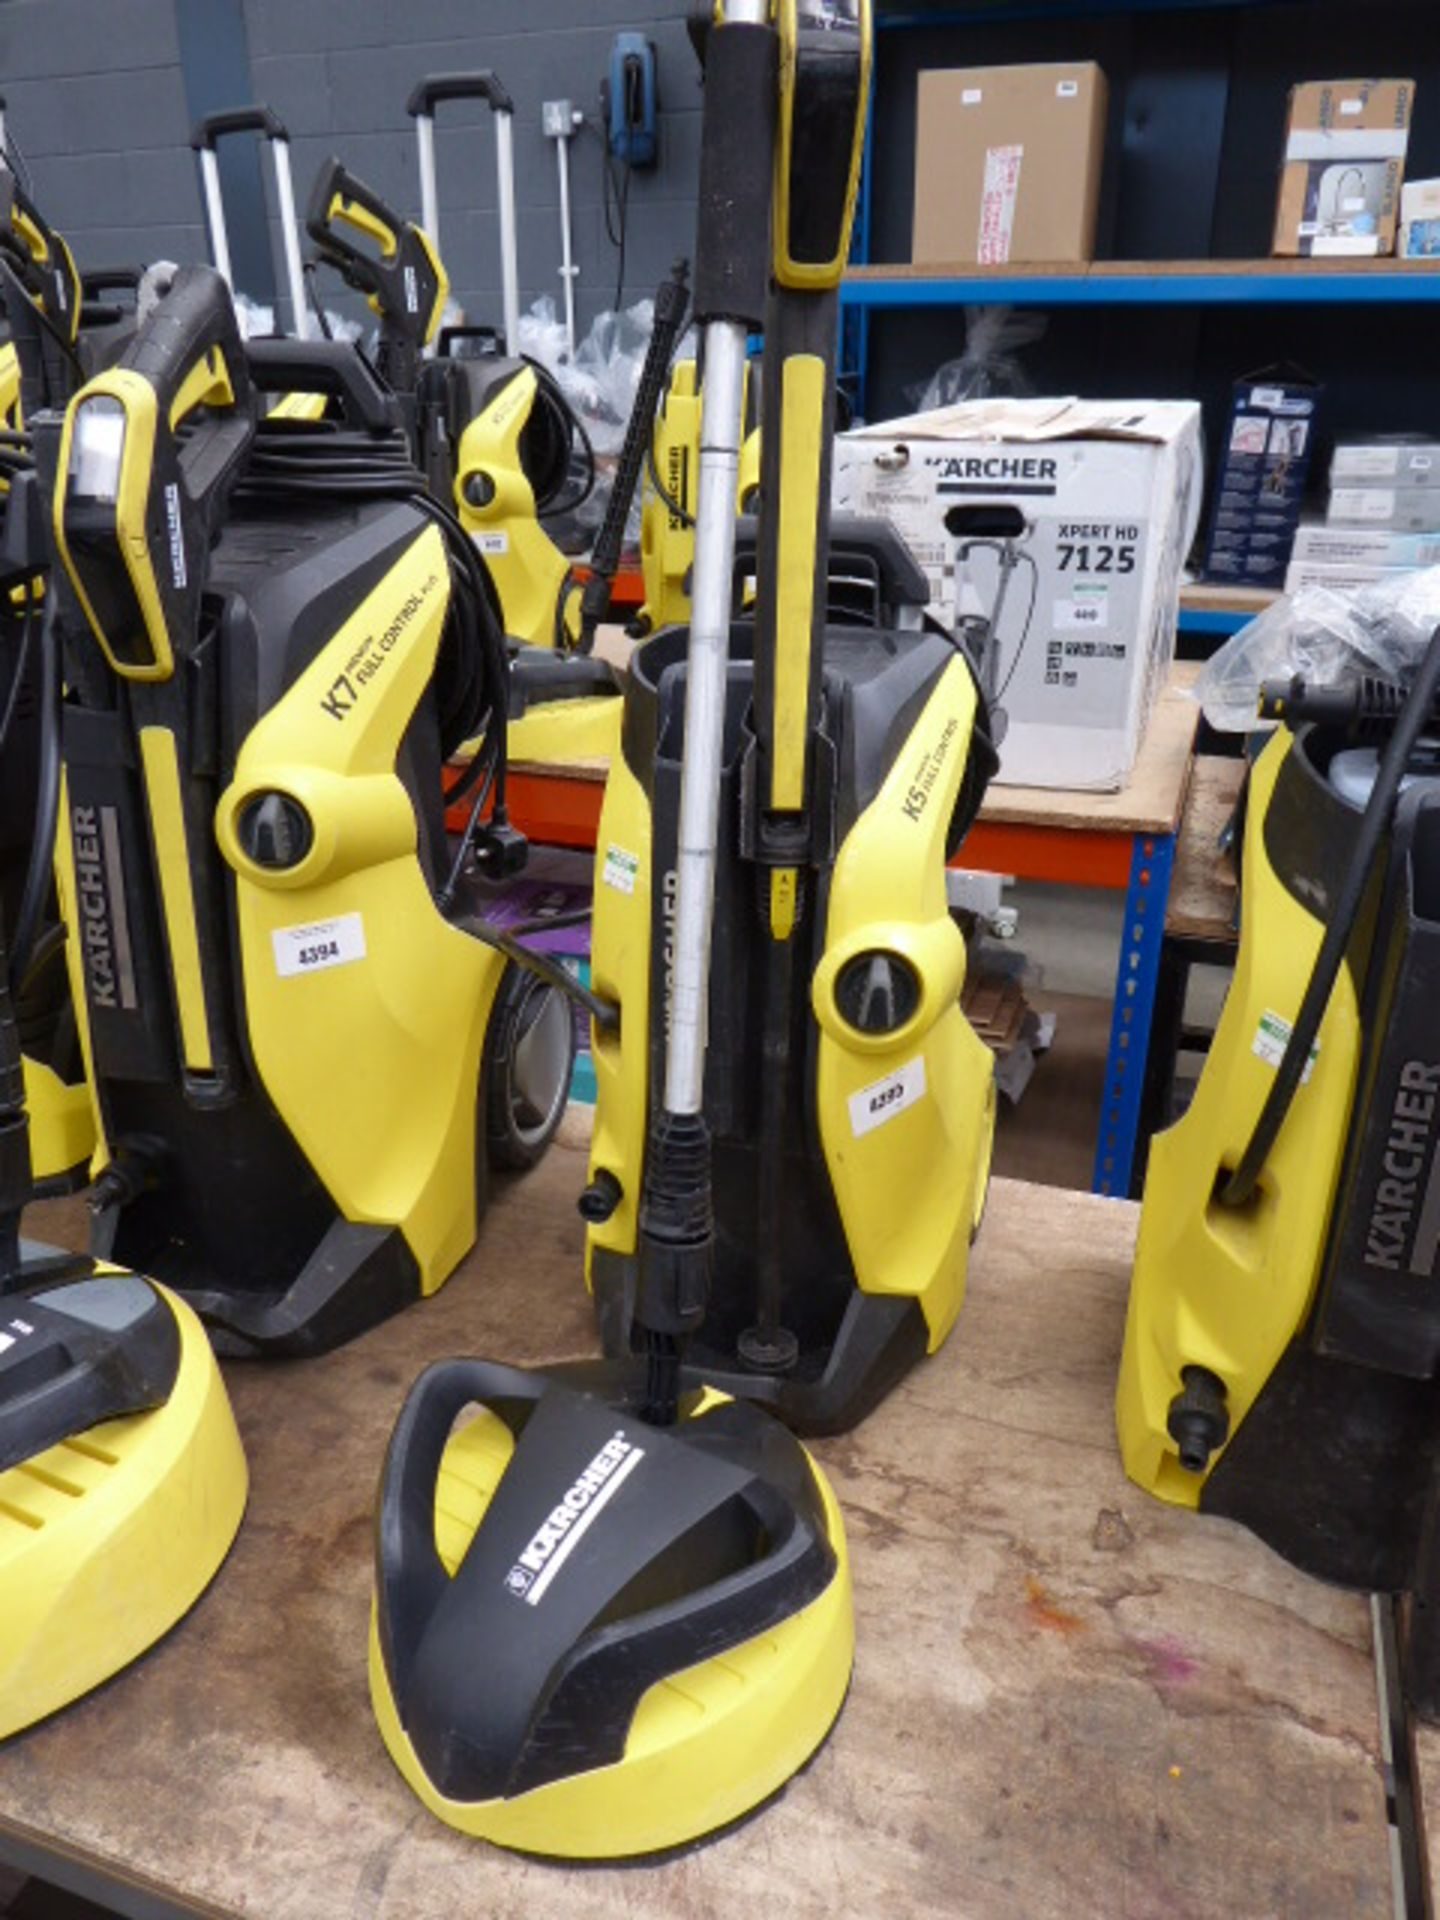 Lot 4395 - Karcher K5 premium full control pressure washer with patio cleaning head